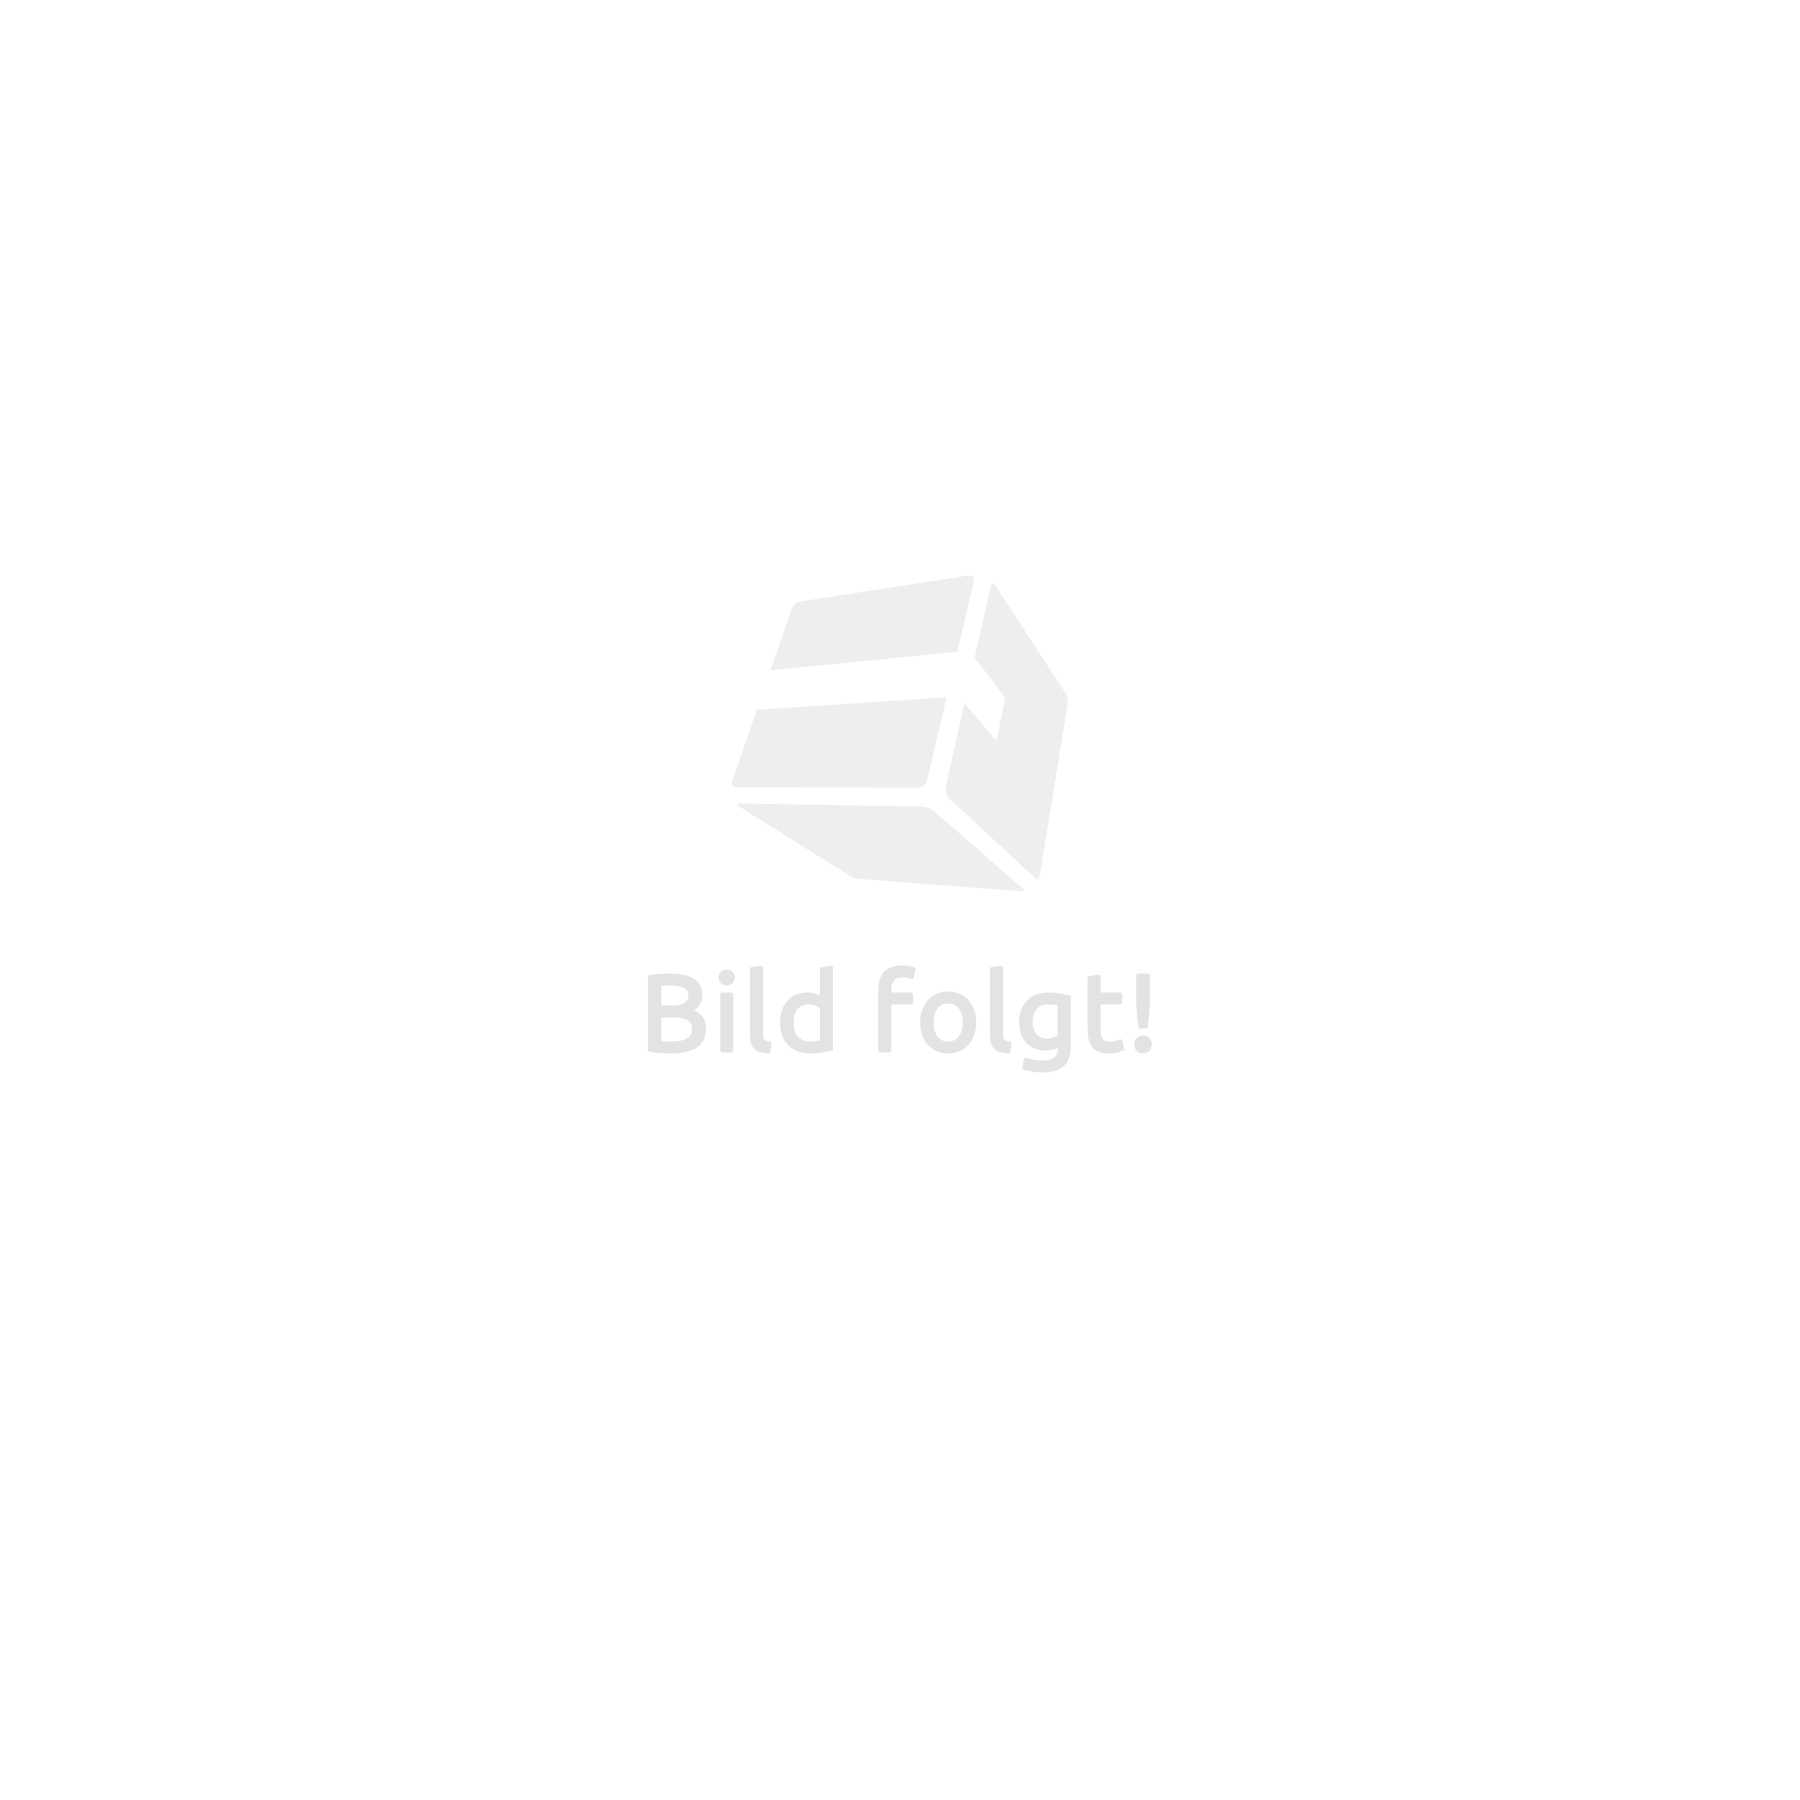 coiffeuse miroir 3 faces rabattables 7 tiroirs. Black Bedroom Furniture Sets. Home Design Ideas